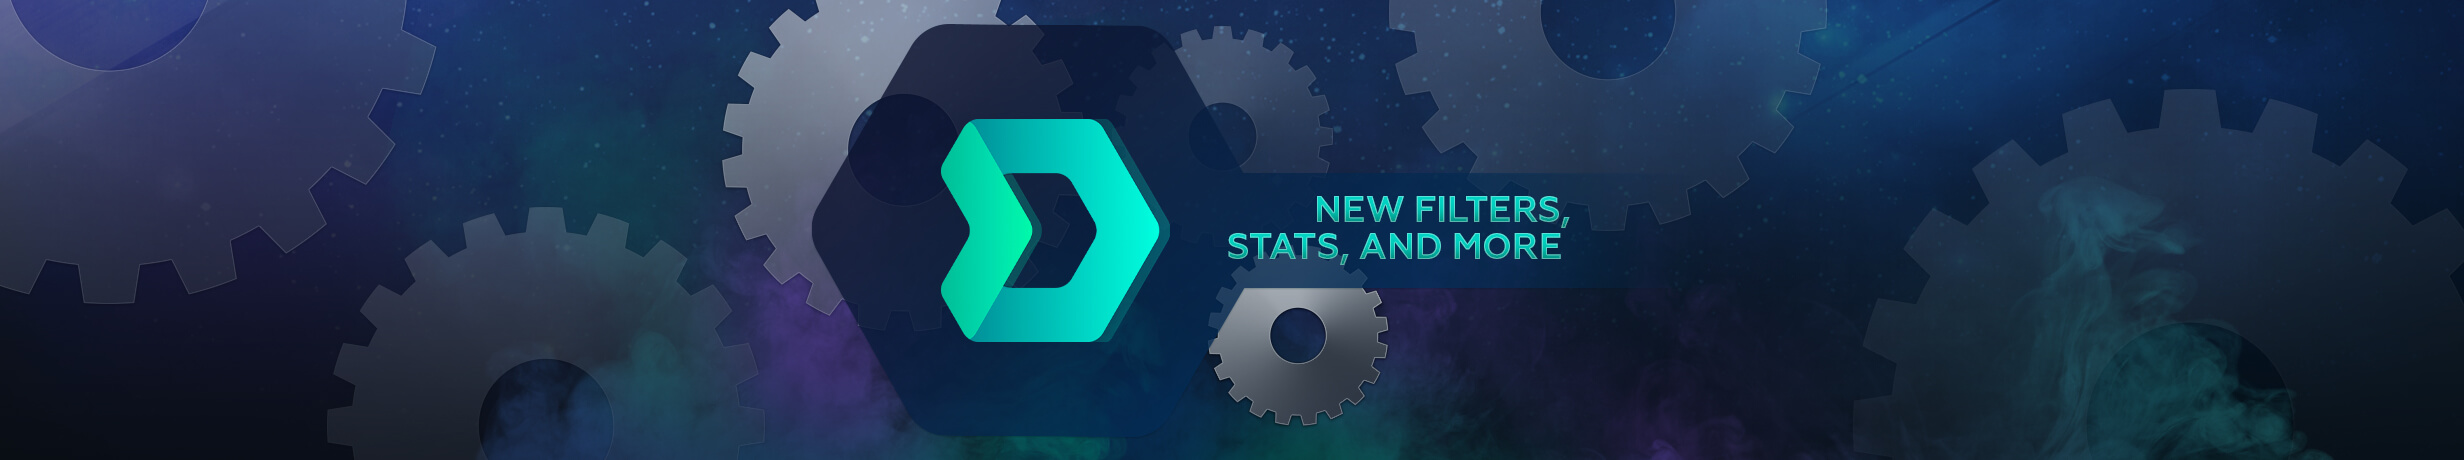 DMarket Update: New Filters, Stats and Upgrades